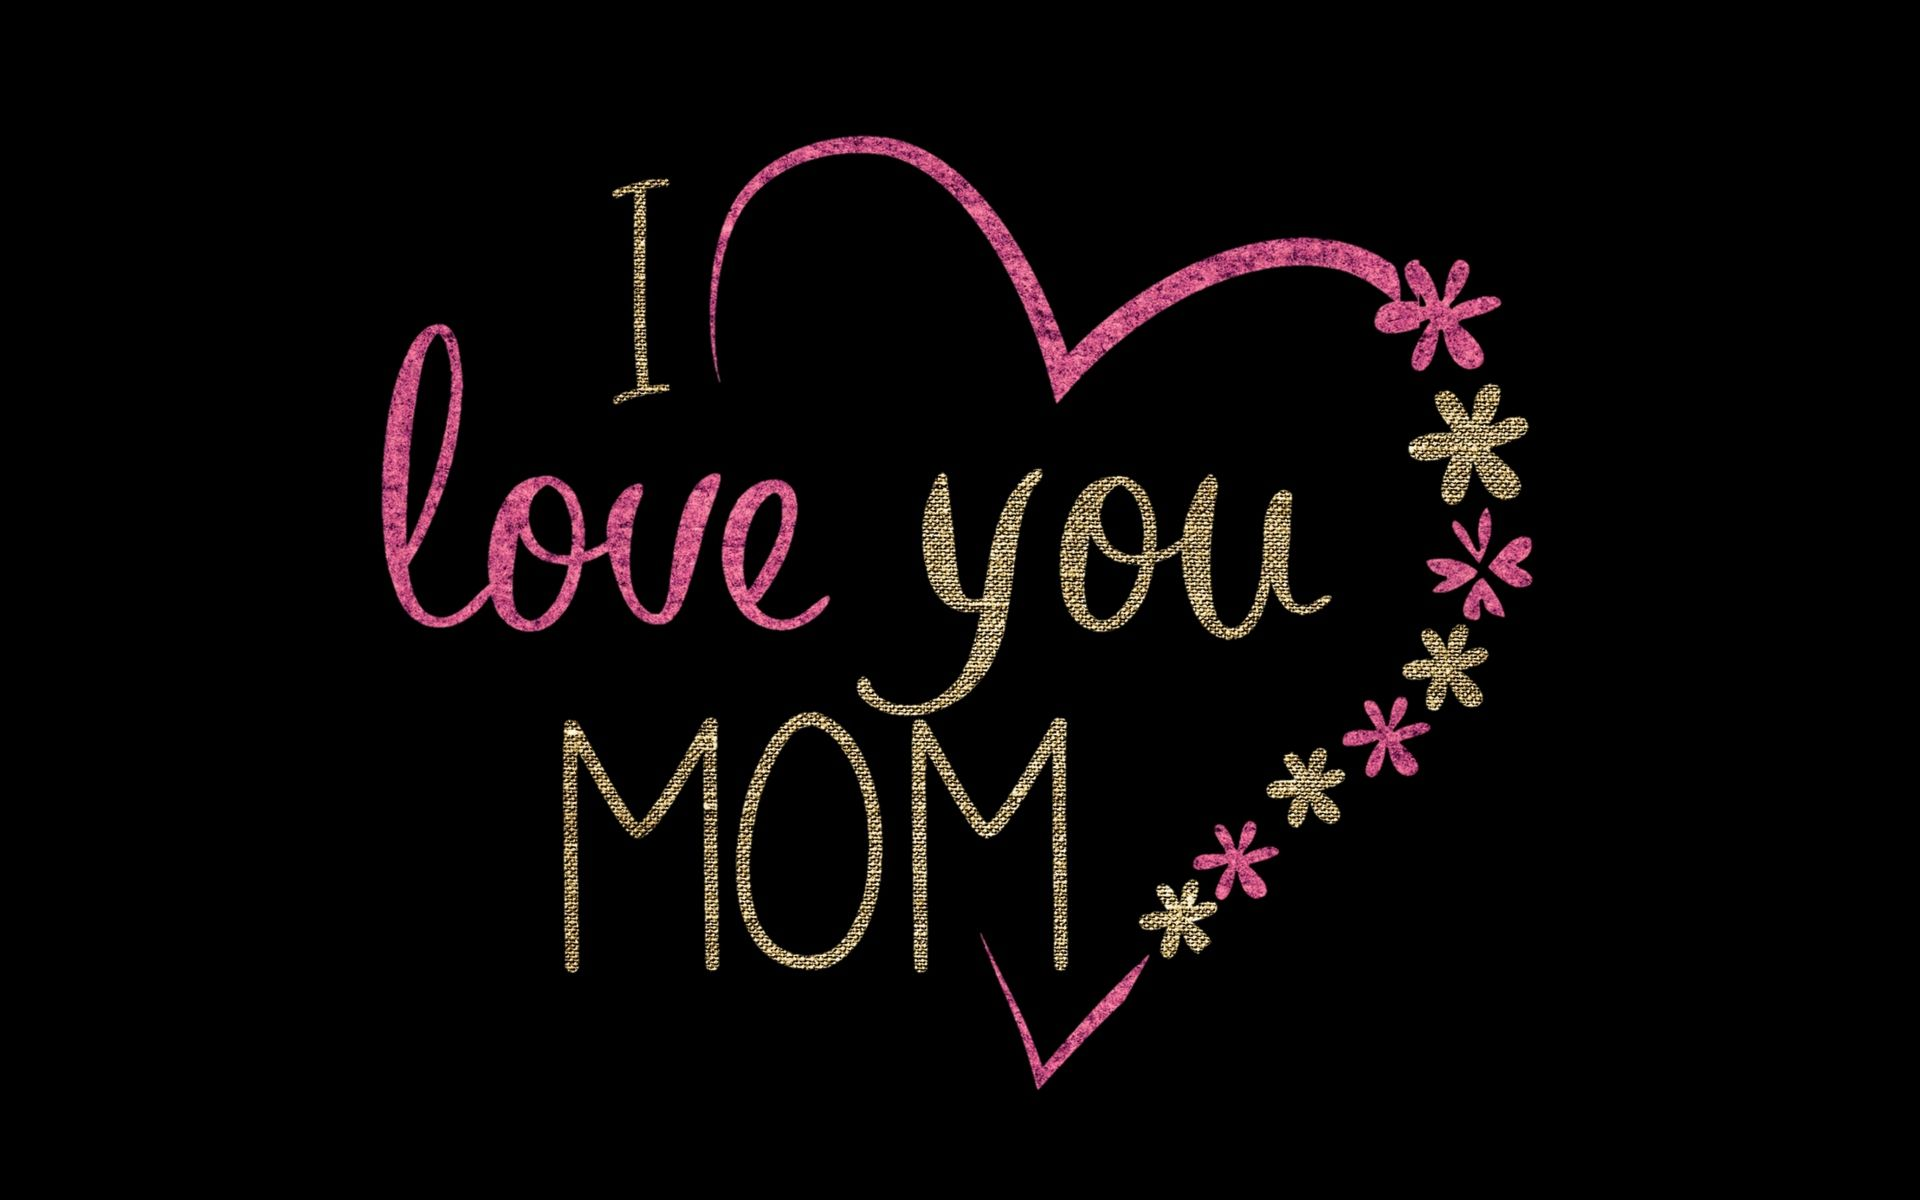 I Love You Mom Images Wallpaper Download Free High Resolutions And Widescreen Art Wallpapers For Your Computer An In 2020 Love You Mom I Love You Mom Love You Messages